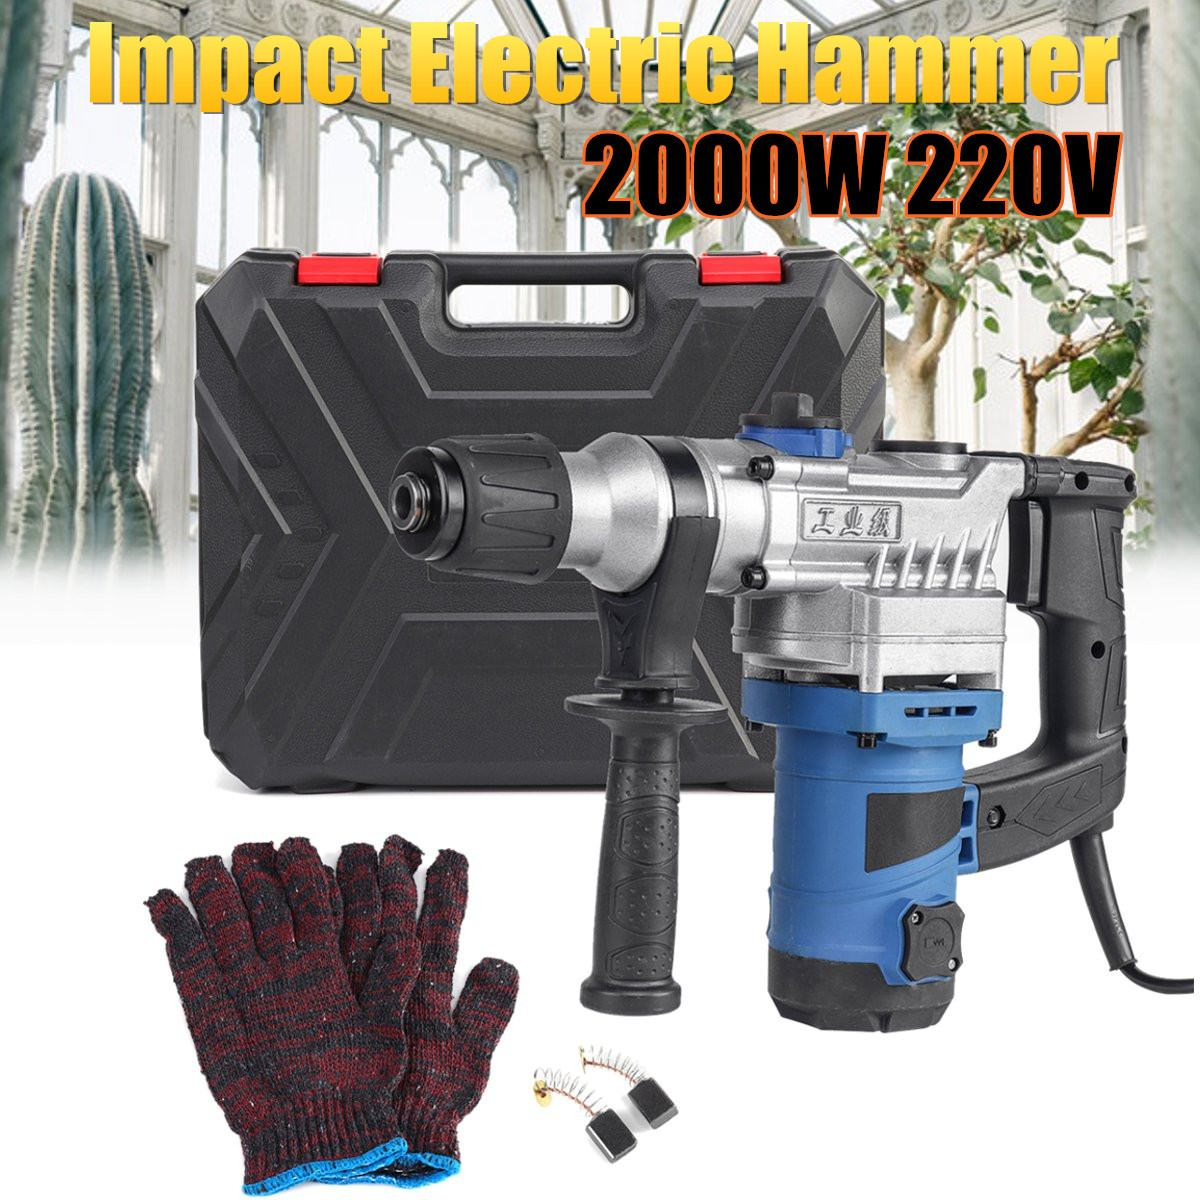 2000W Heavy Cordless Rotary Impact Hammer Electric Hammer Drill Screwdriver Concrete Breaker 220V With Portable Tool Storage Box